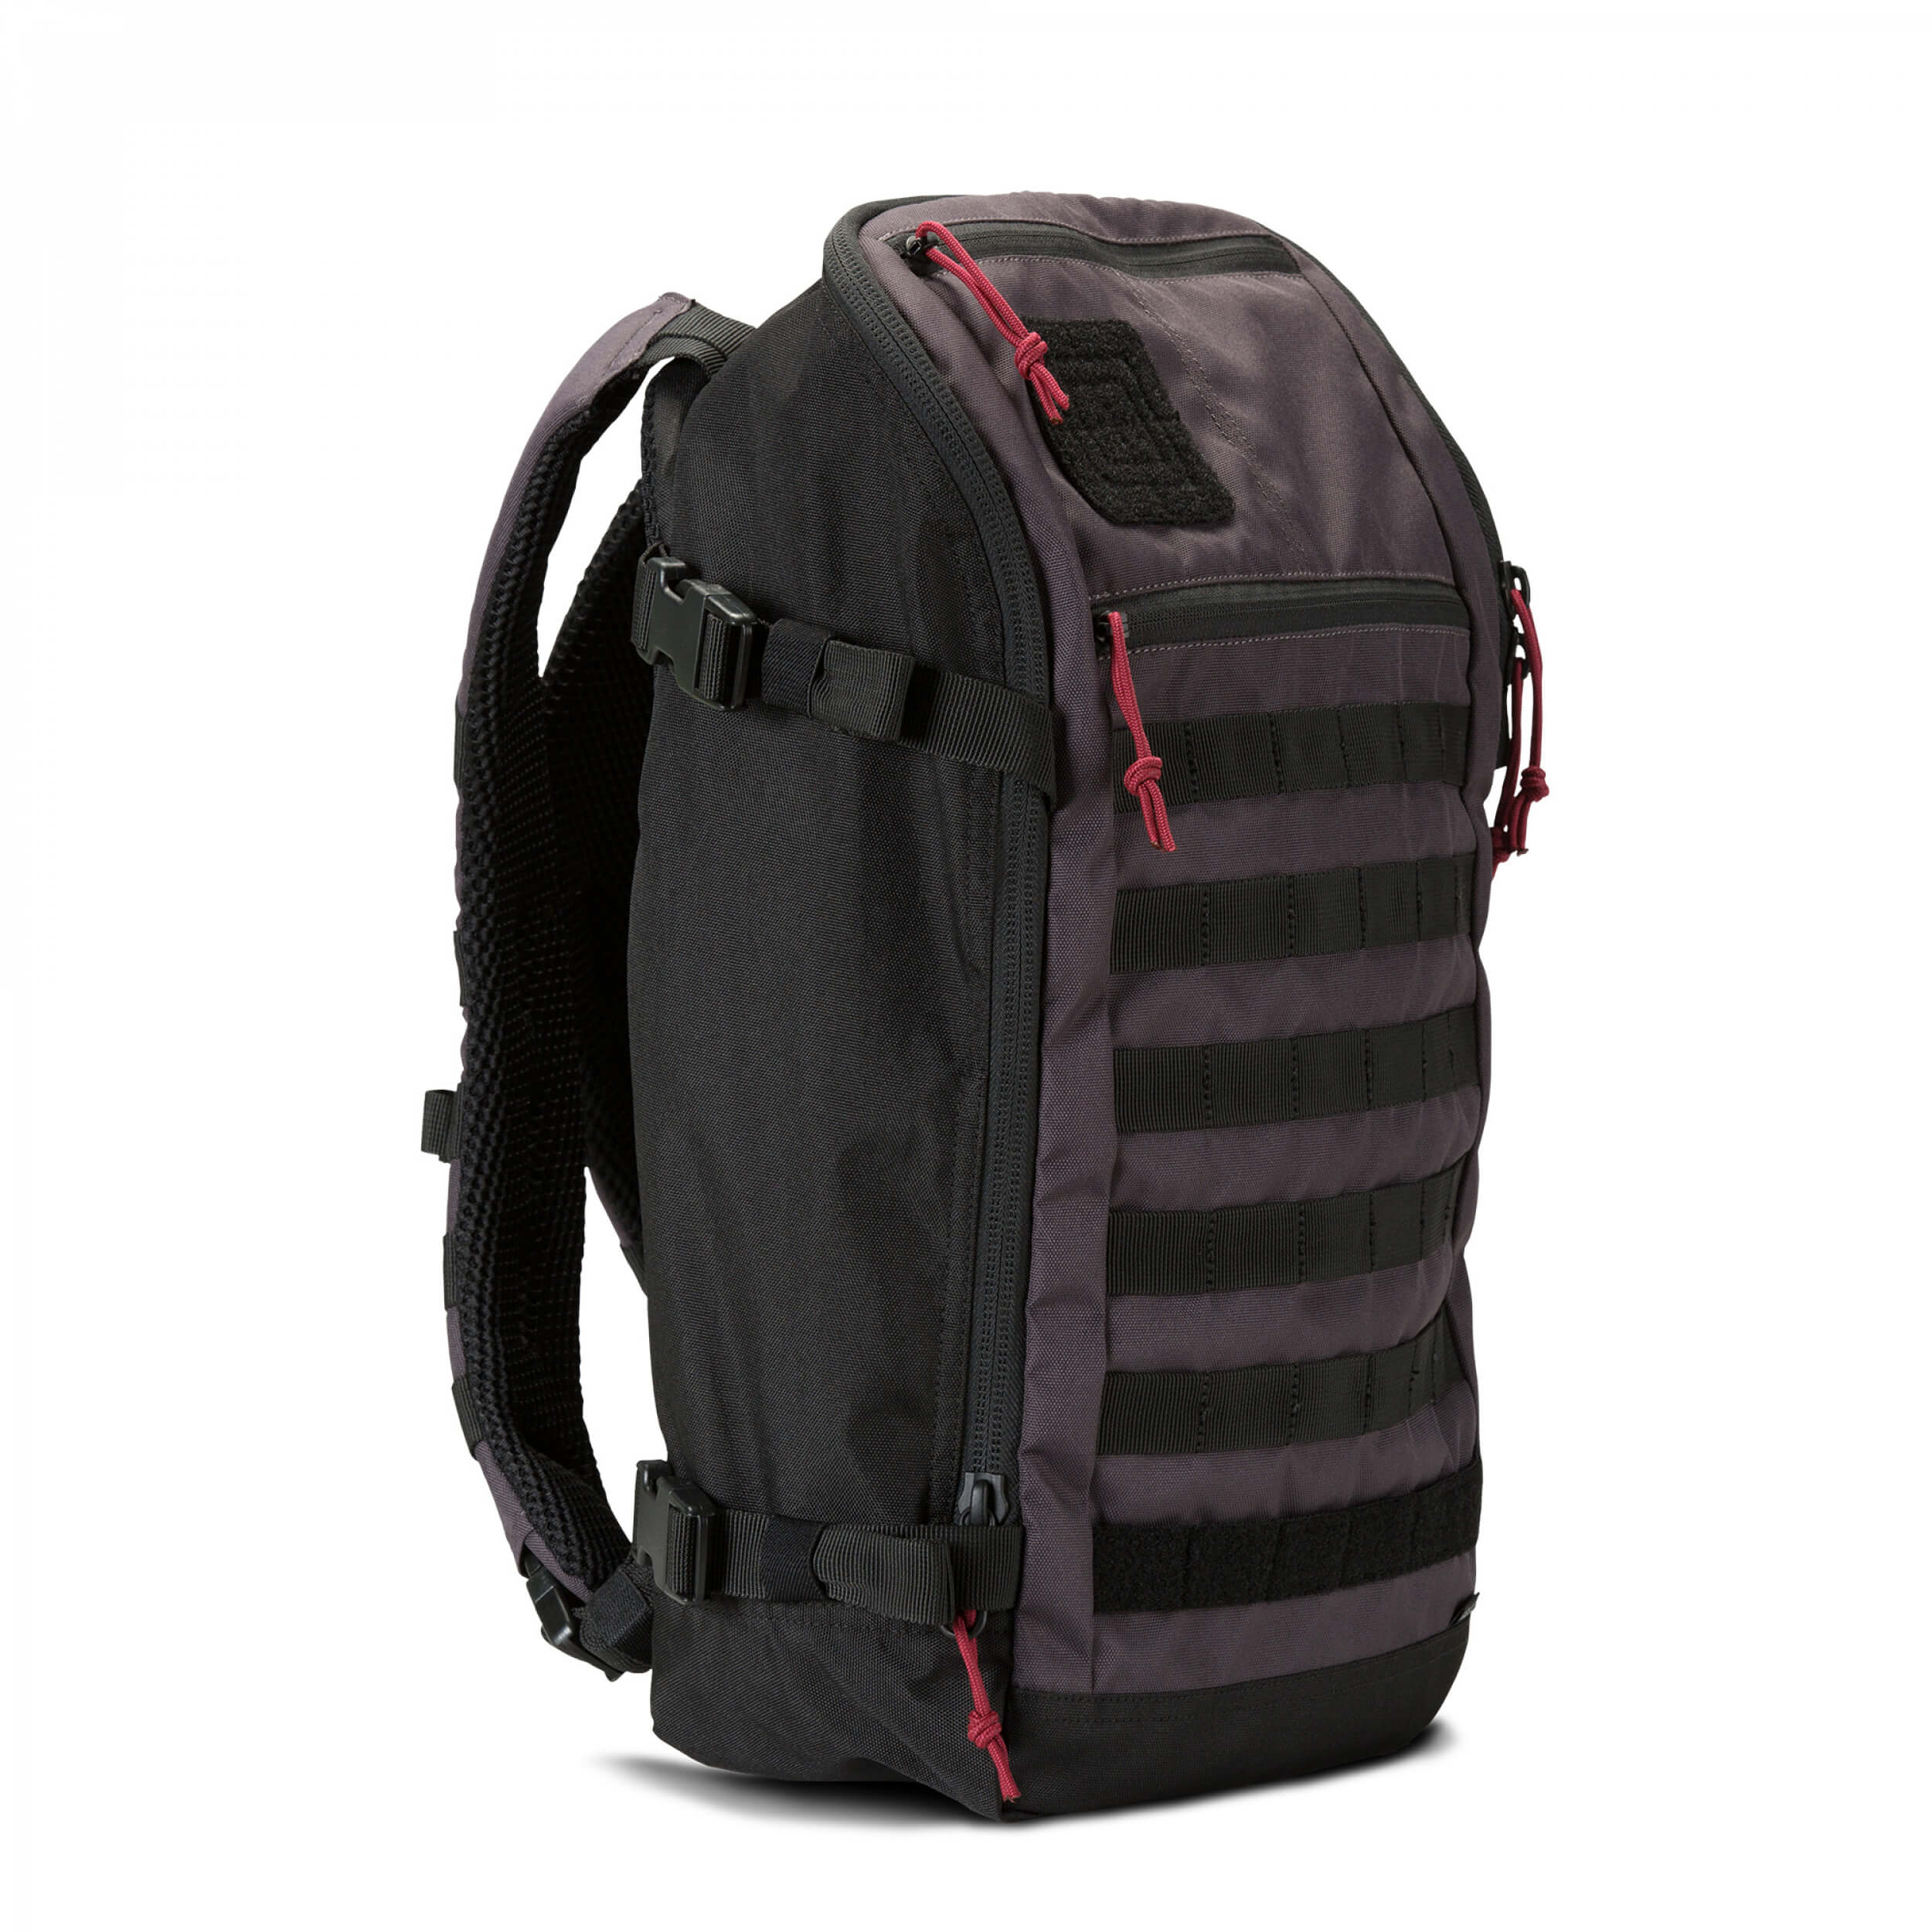 5.11 Tactical Rapid Quad Zip Pack 27L Backpack STOKEHOLD